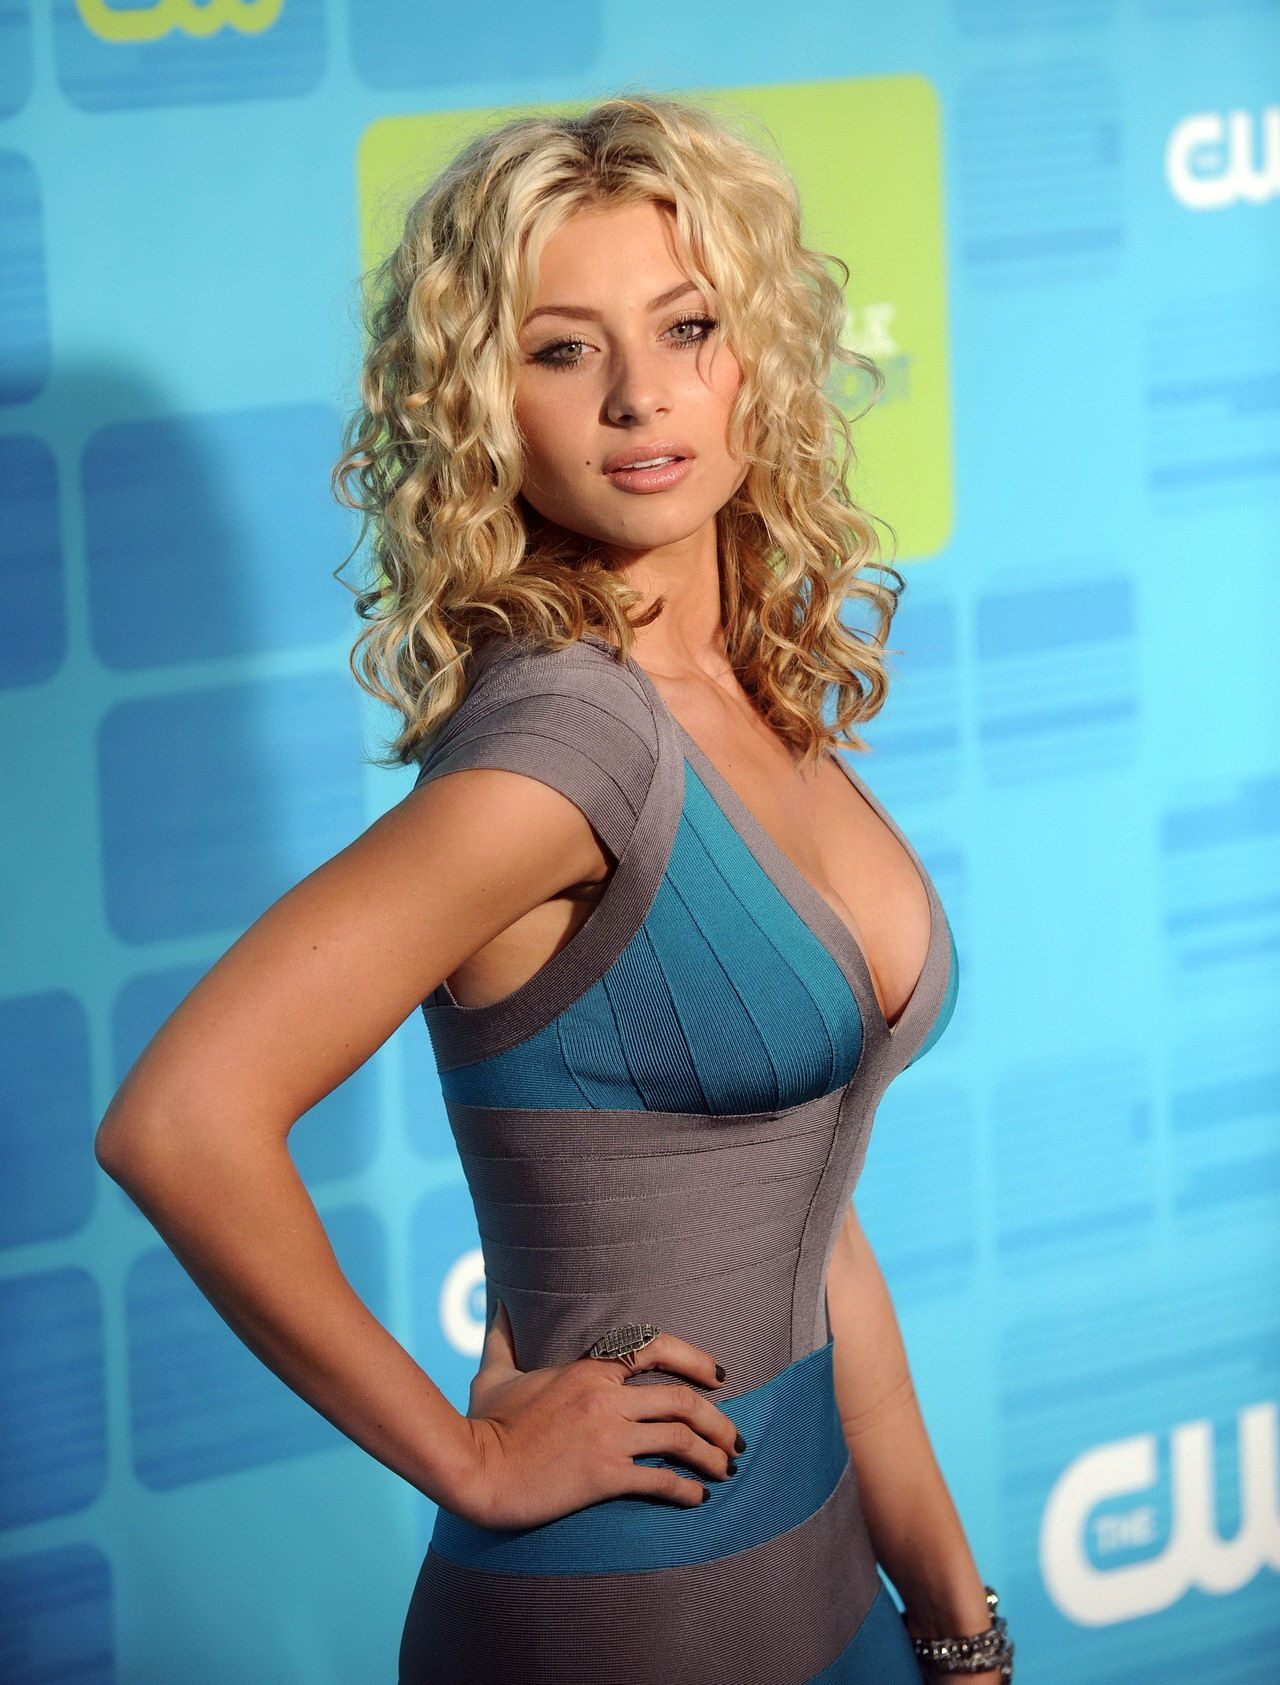 How to Contact Aly Michalka: Phone Number, Email Address